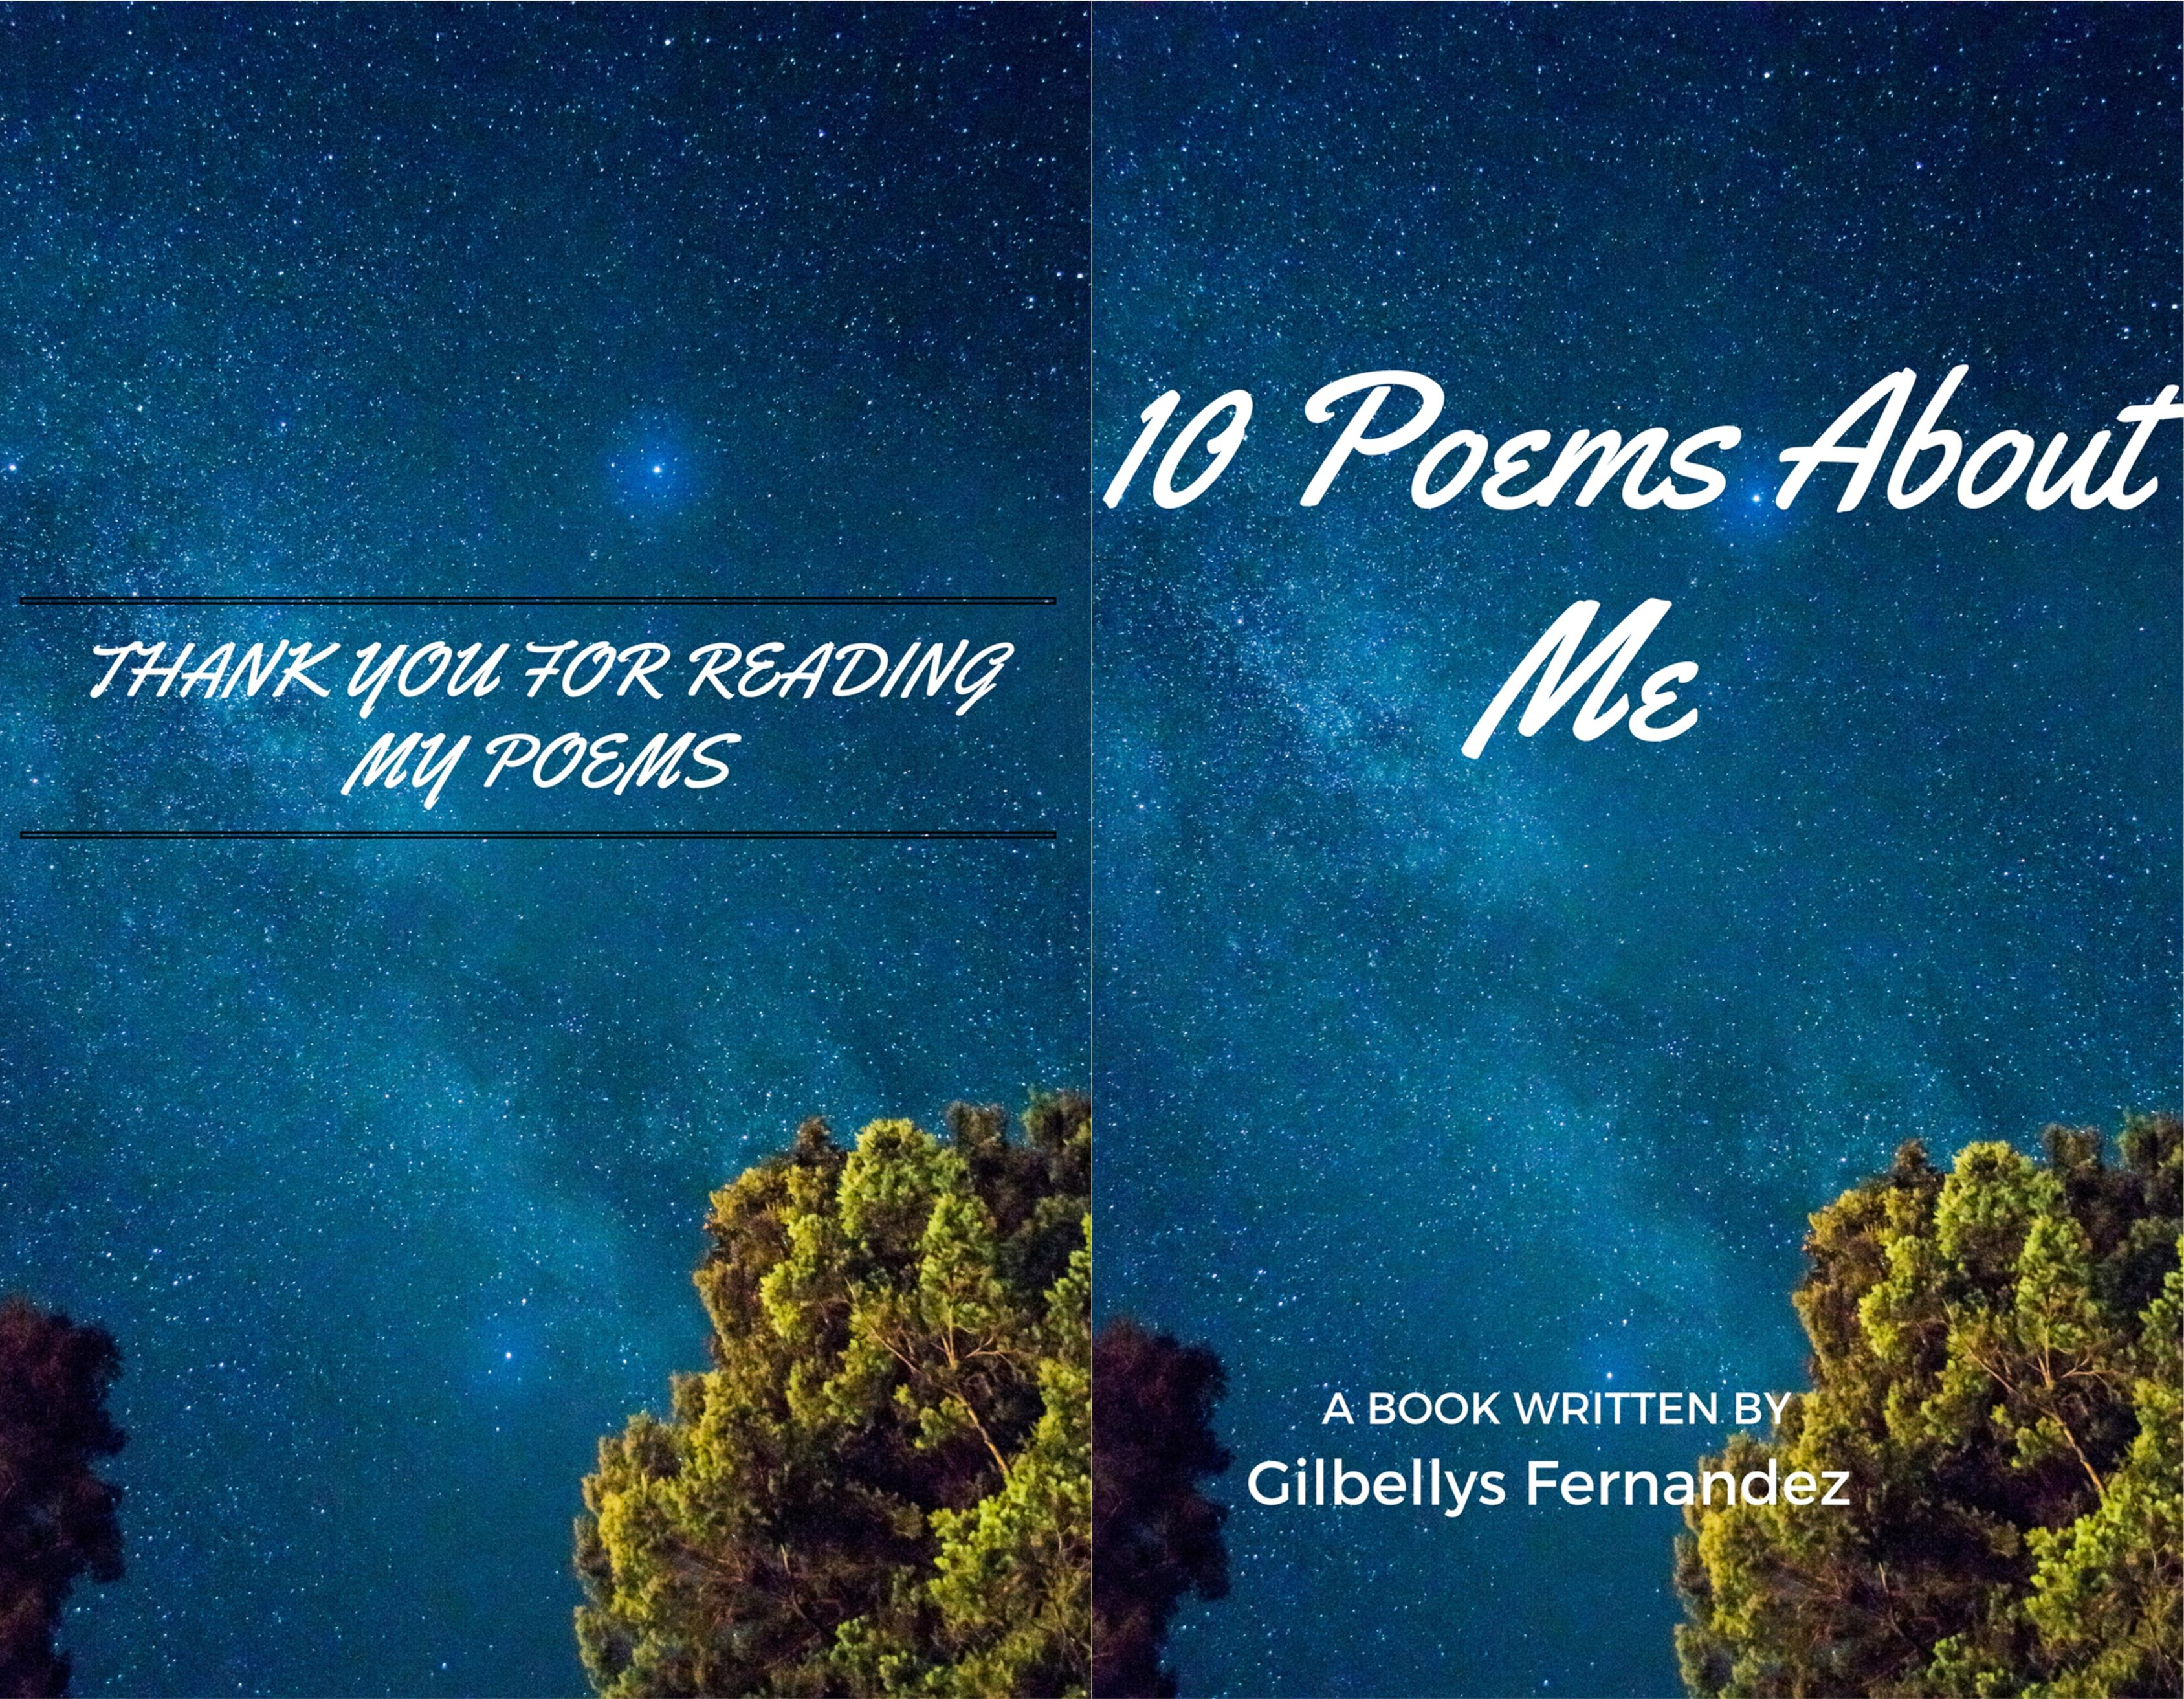 10 Poems About Me cover image